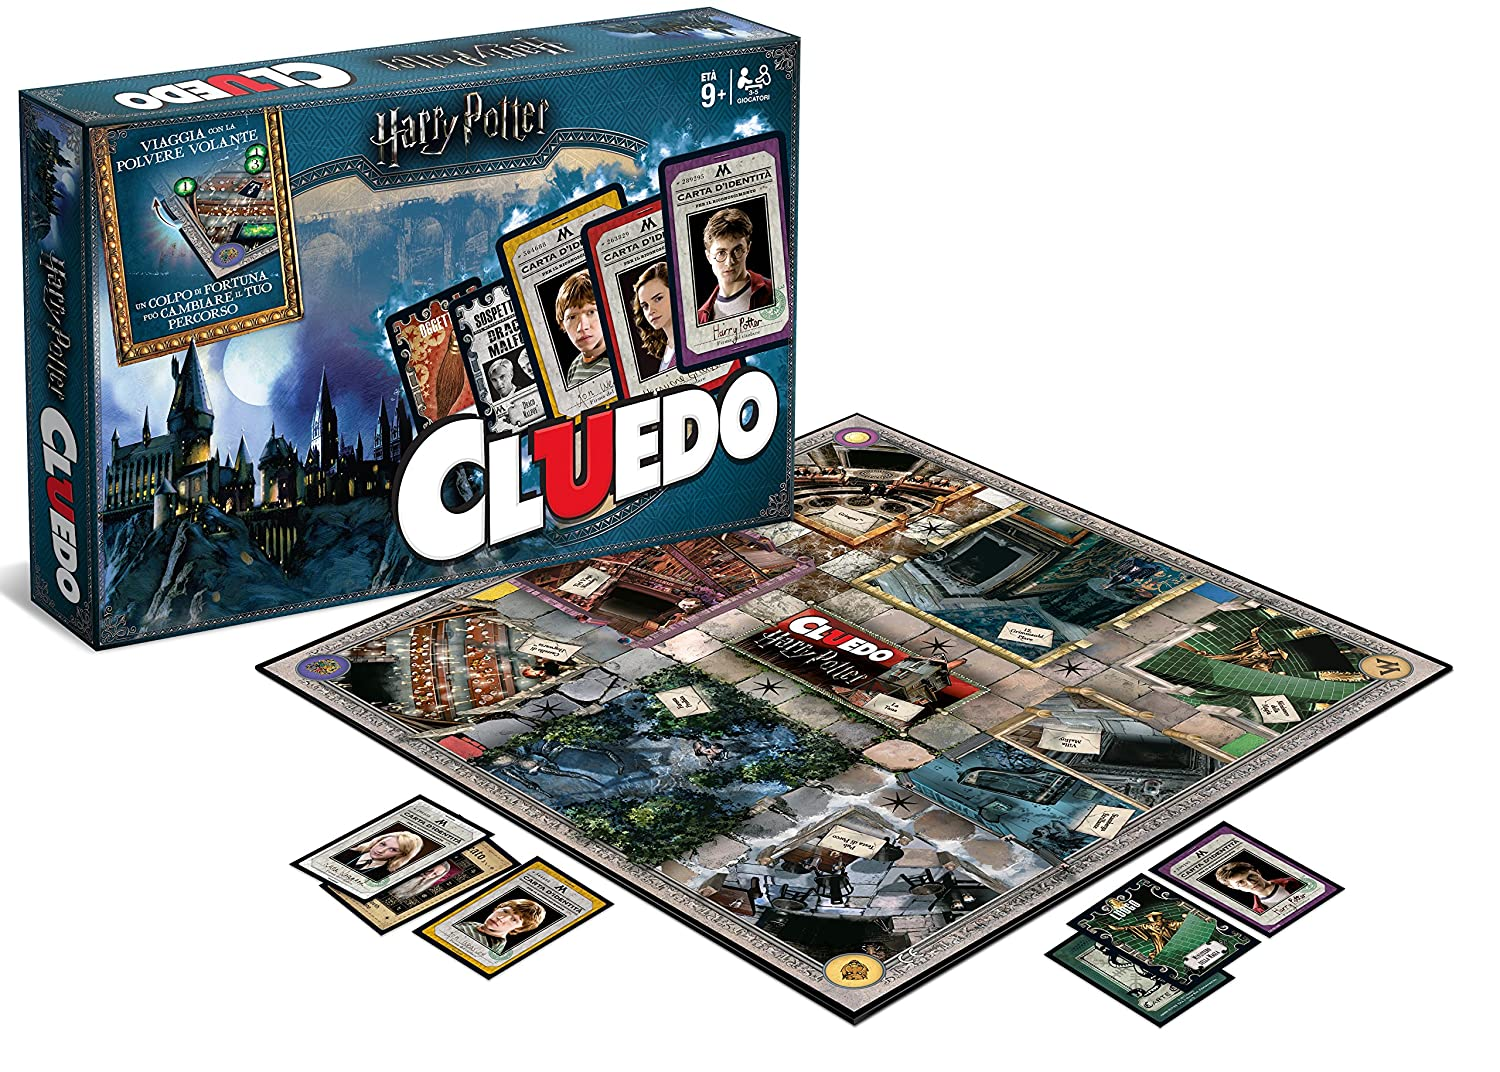 /Board Game/ Italian /Cluedo Harry Potter Collectable Edition 02400 Winning Moves/